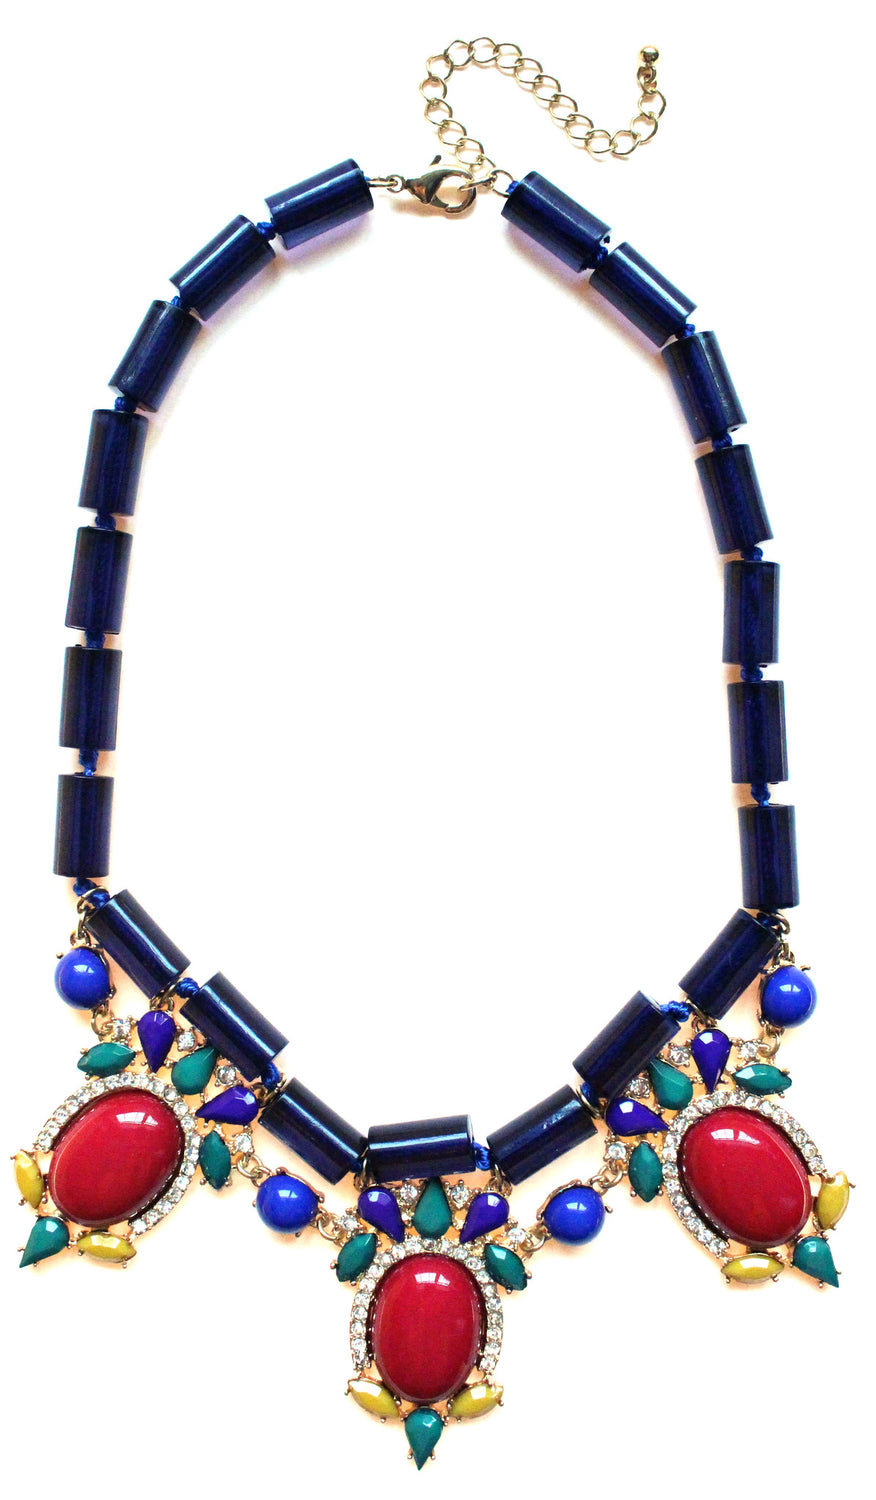 Colorful Beaded & Jeweled Statement Necklace- Navy & Red